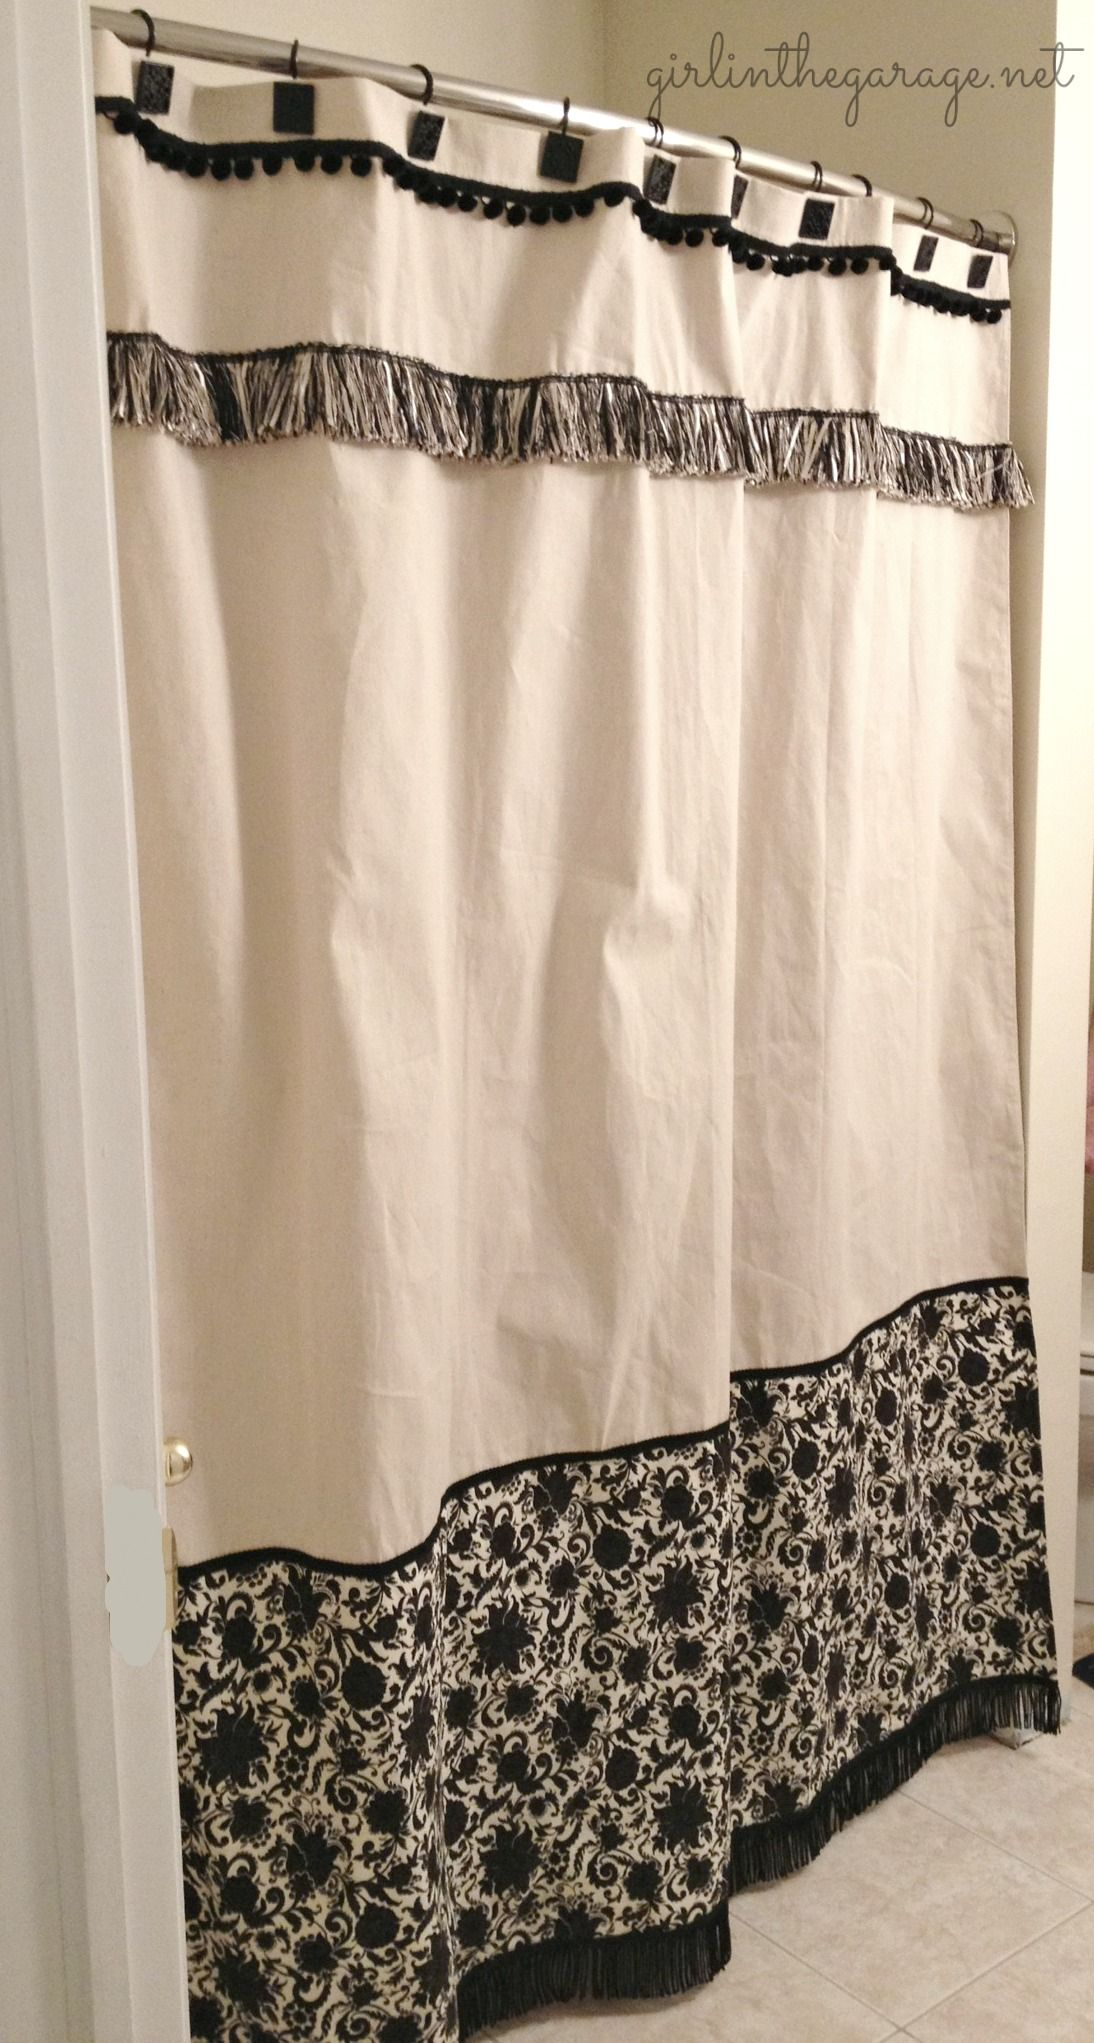 Diy shower curtain the kid girls and fabrics